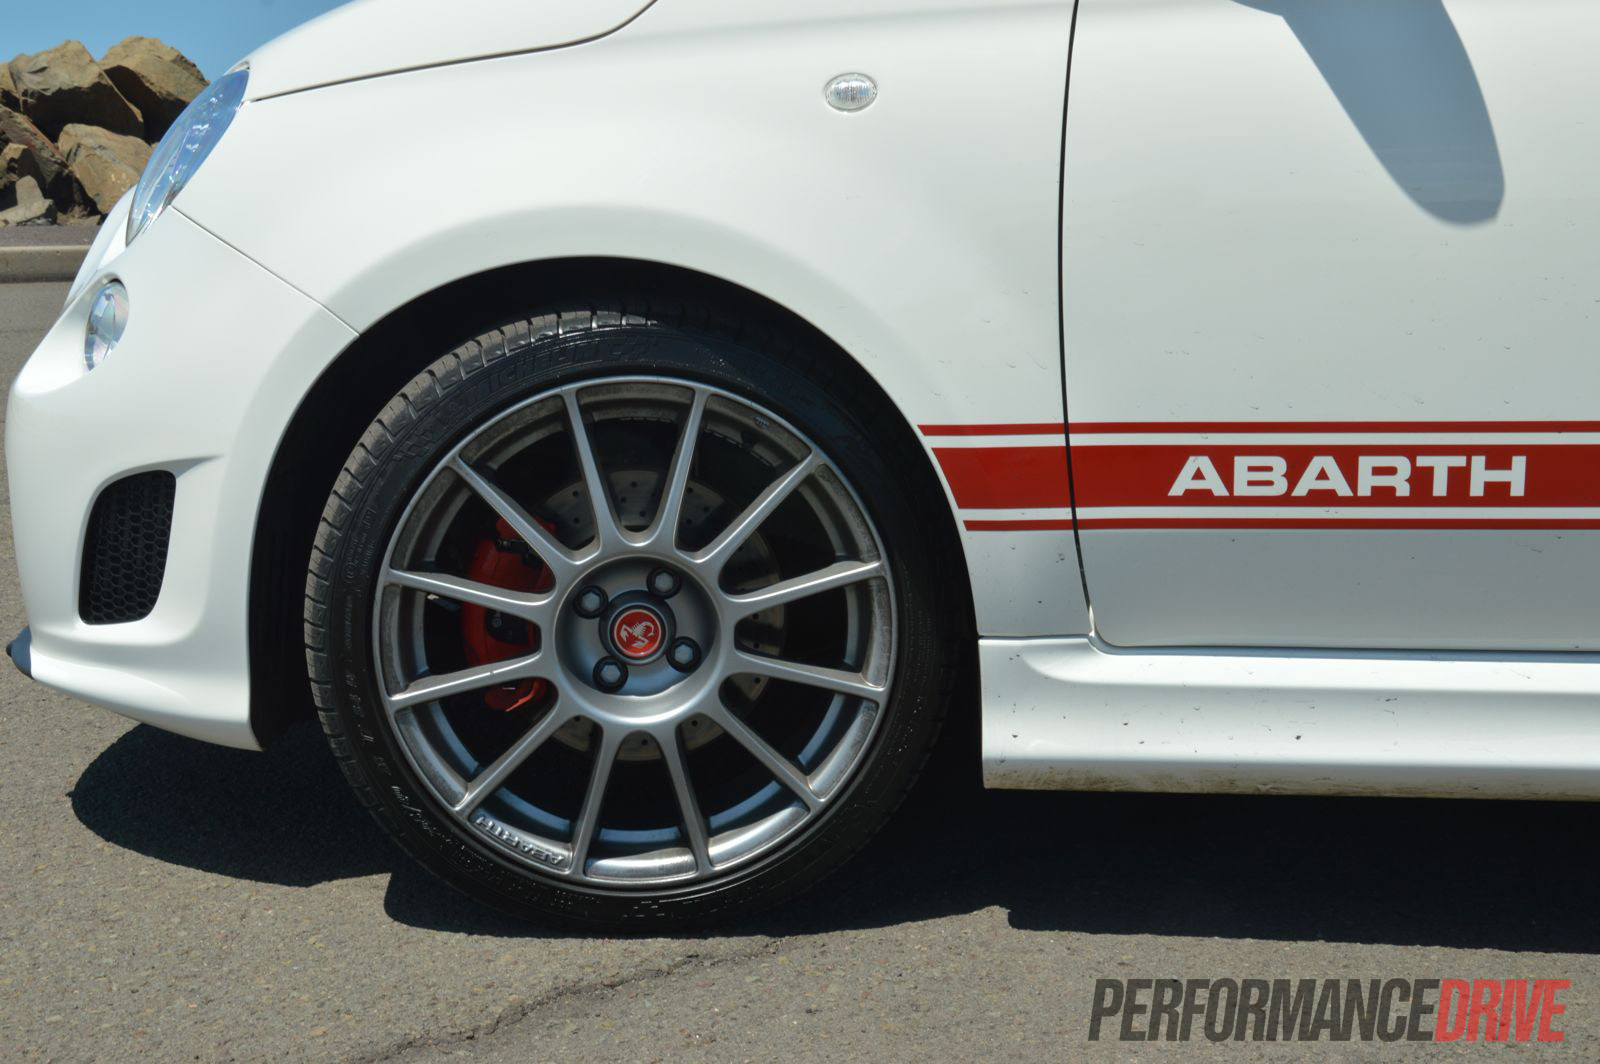 2013 Fiat 500 Abarth Esseesse 17in alloy wheels |